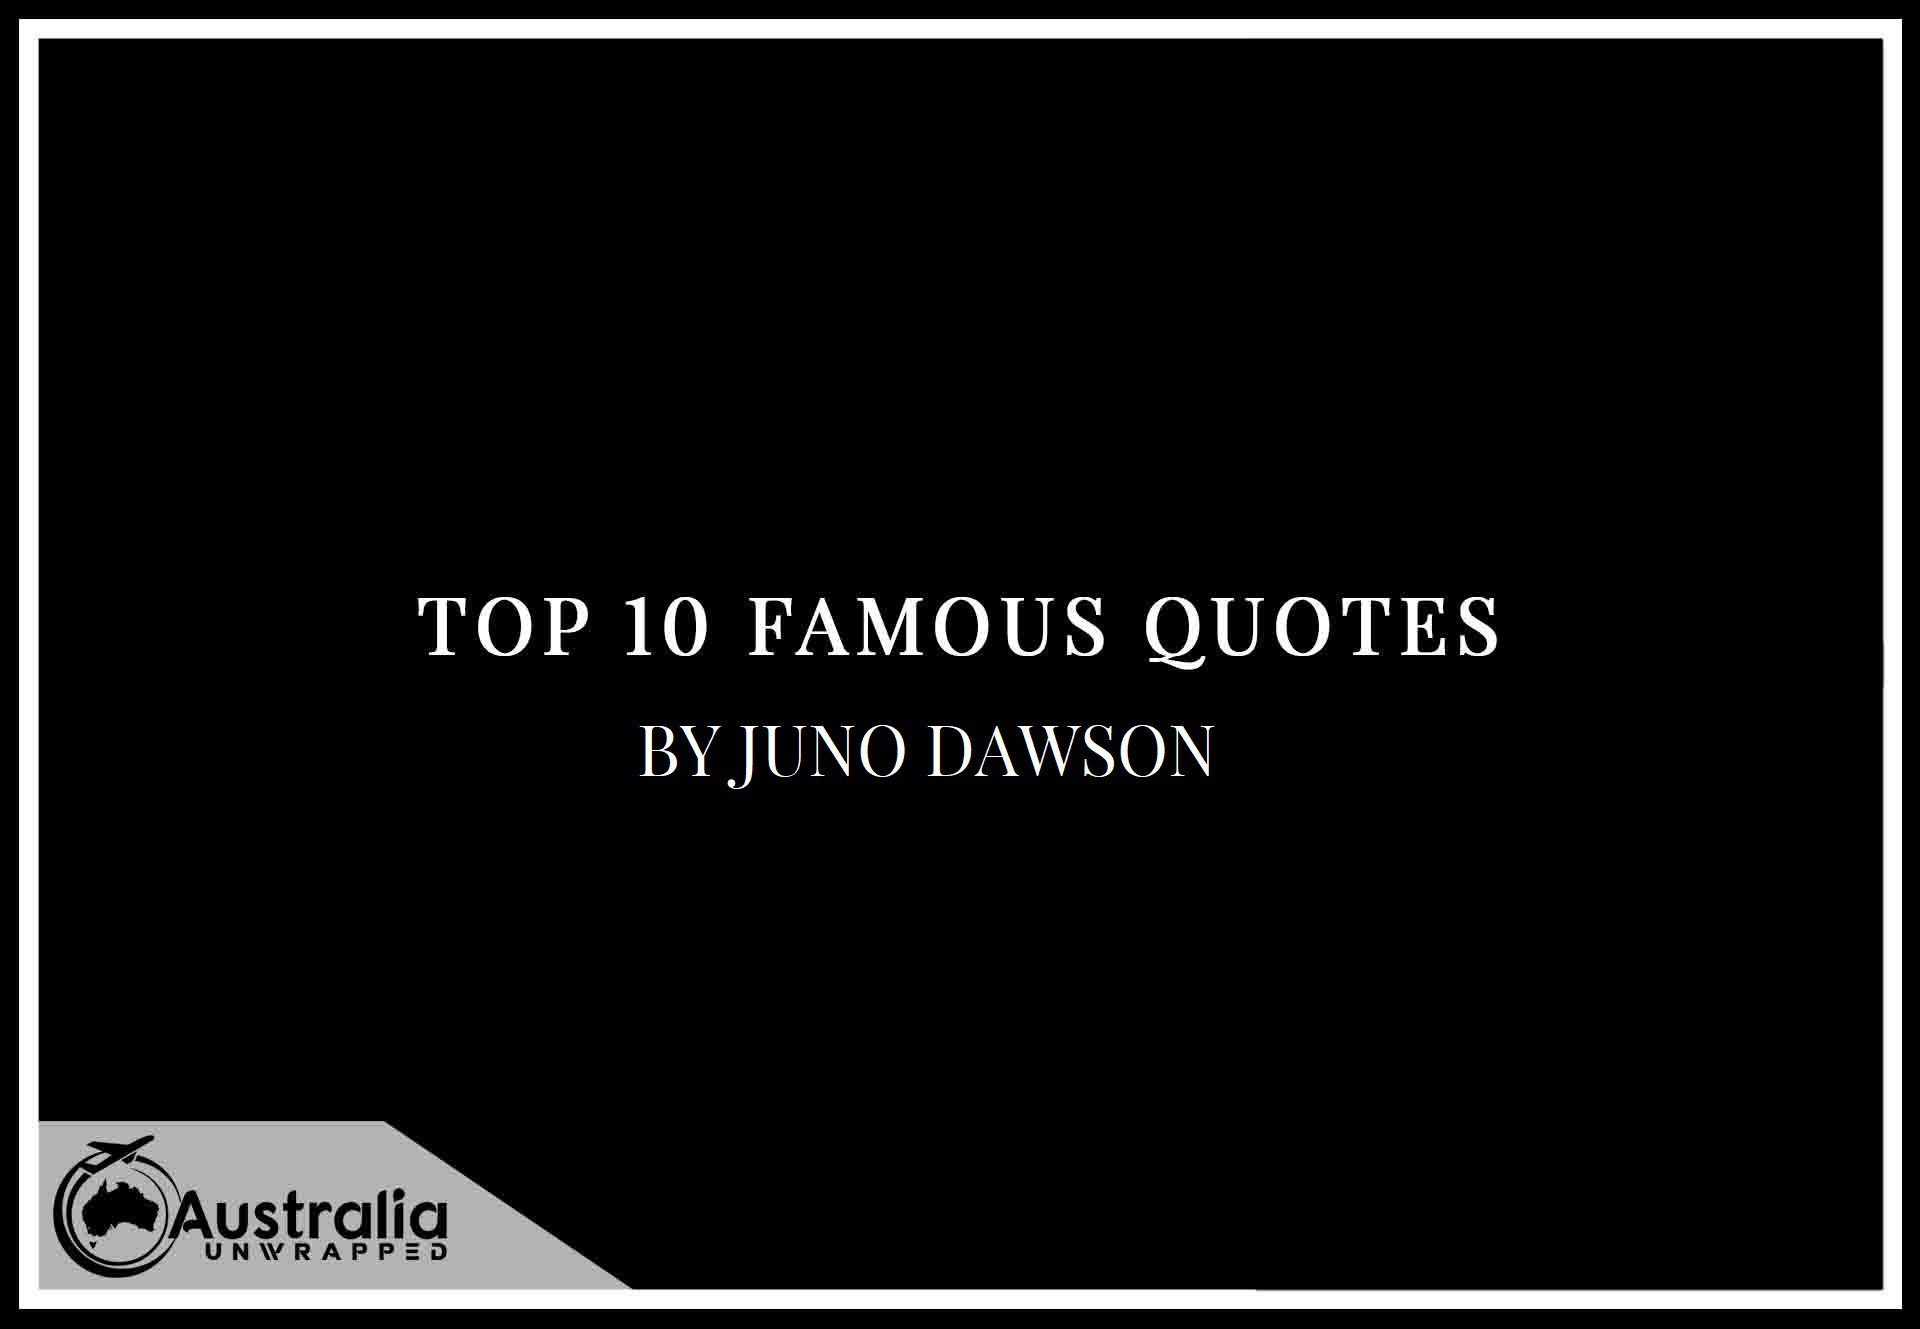 Top 10 Famous Quotes by Author Juno Dawson